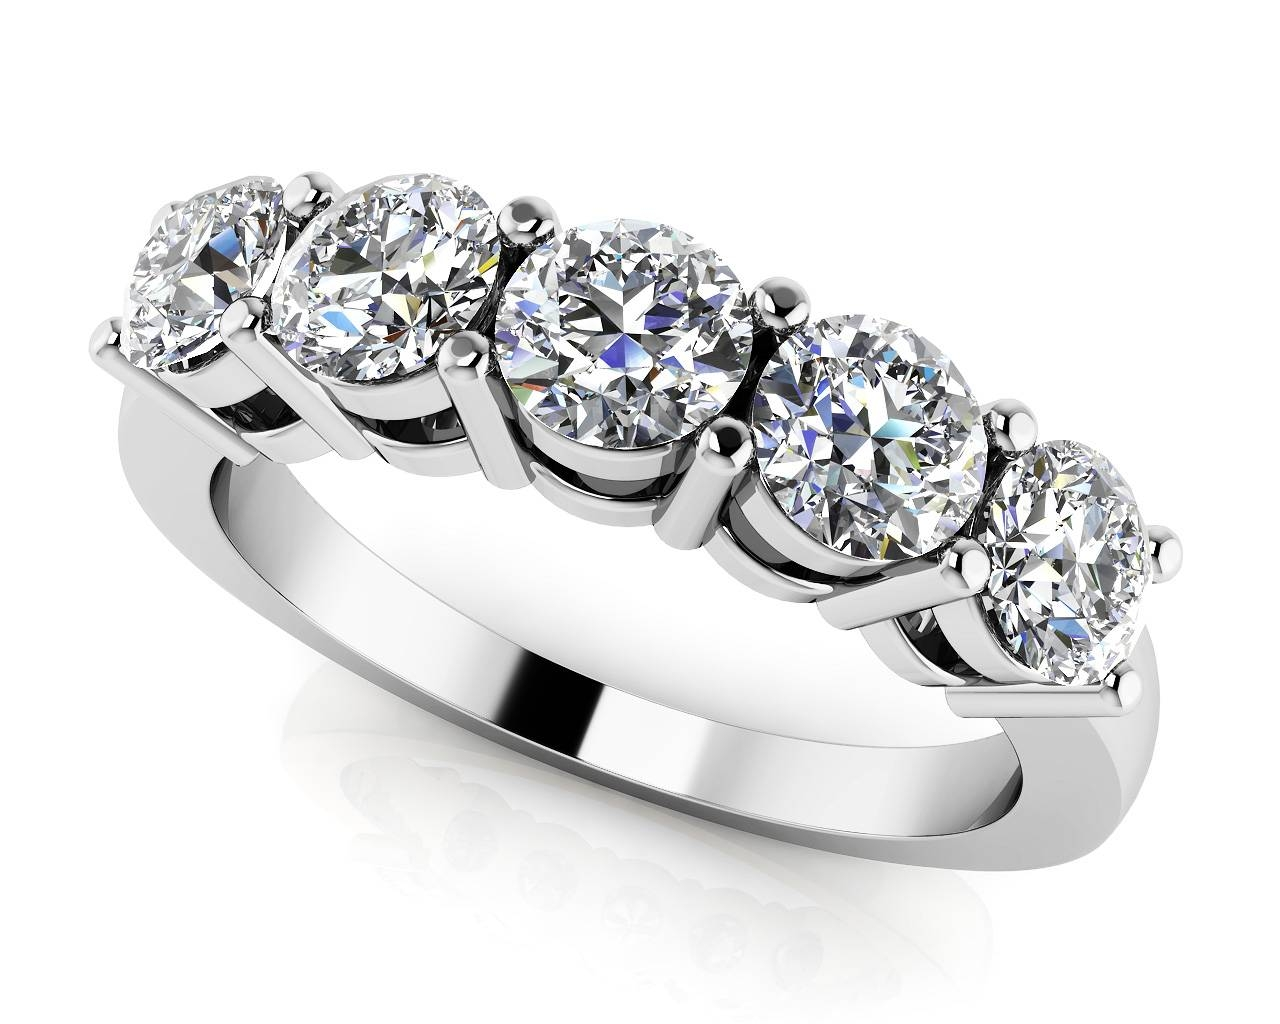 25 Best Of 25 Year Wedding Anniversary Rings